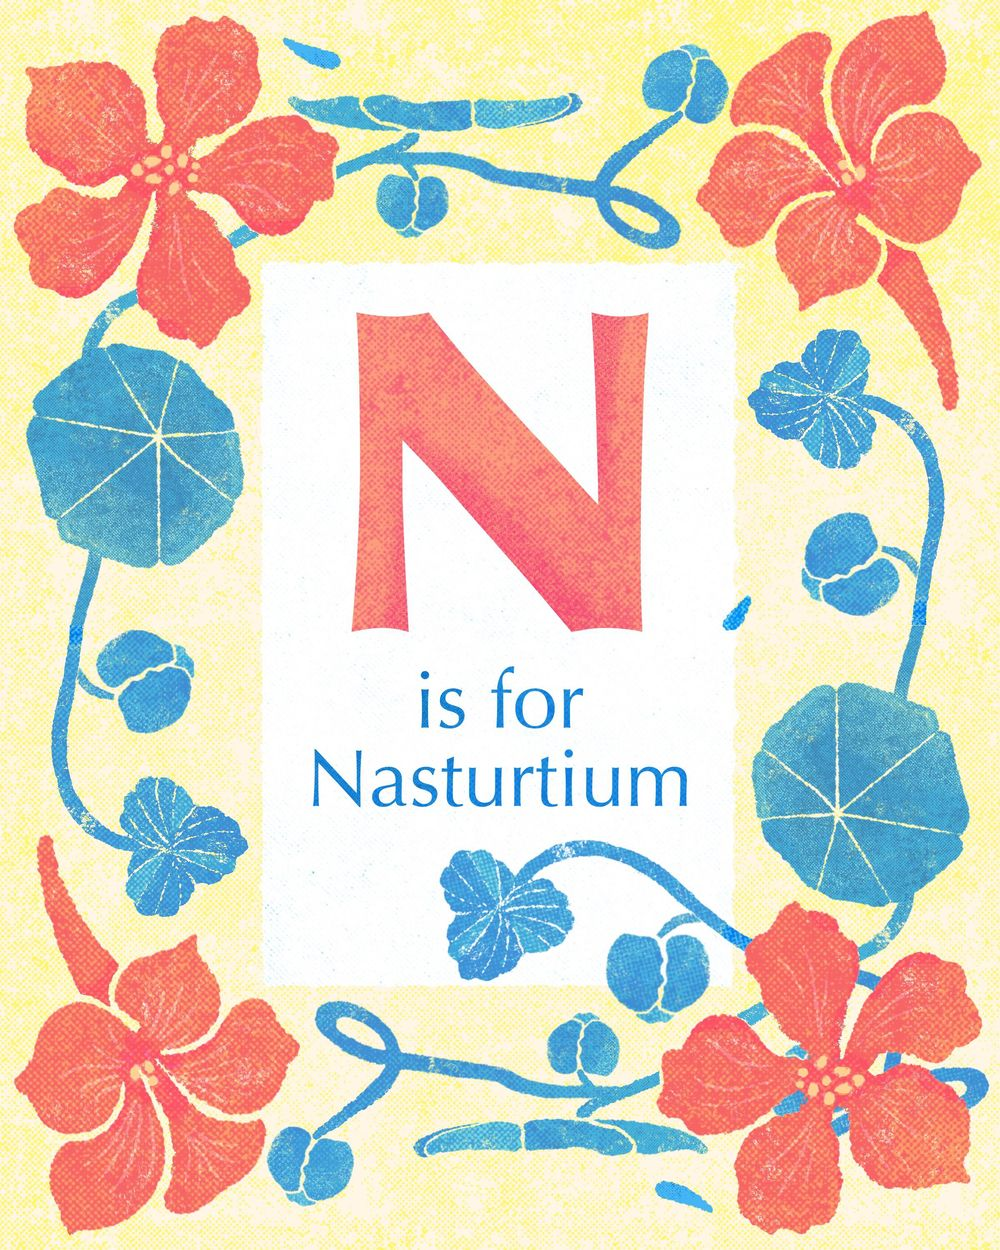 Nasturtiums (you can eat them!) - image 1 - student project